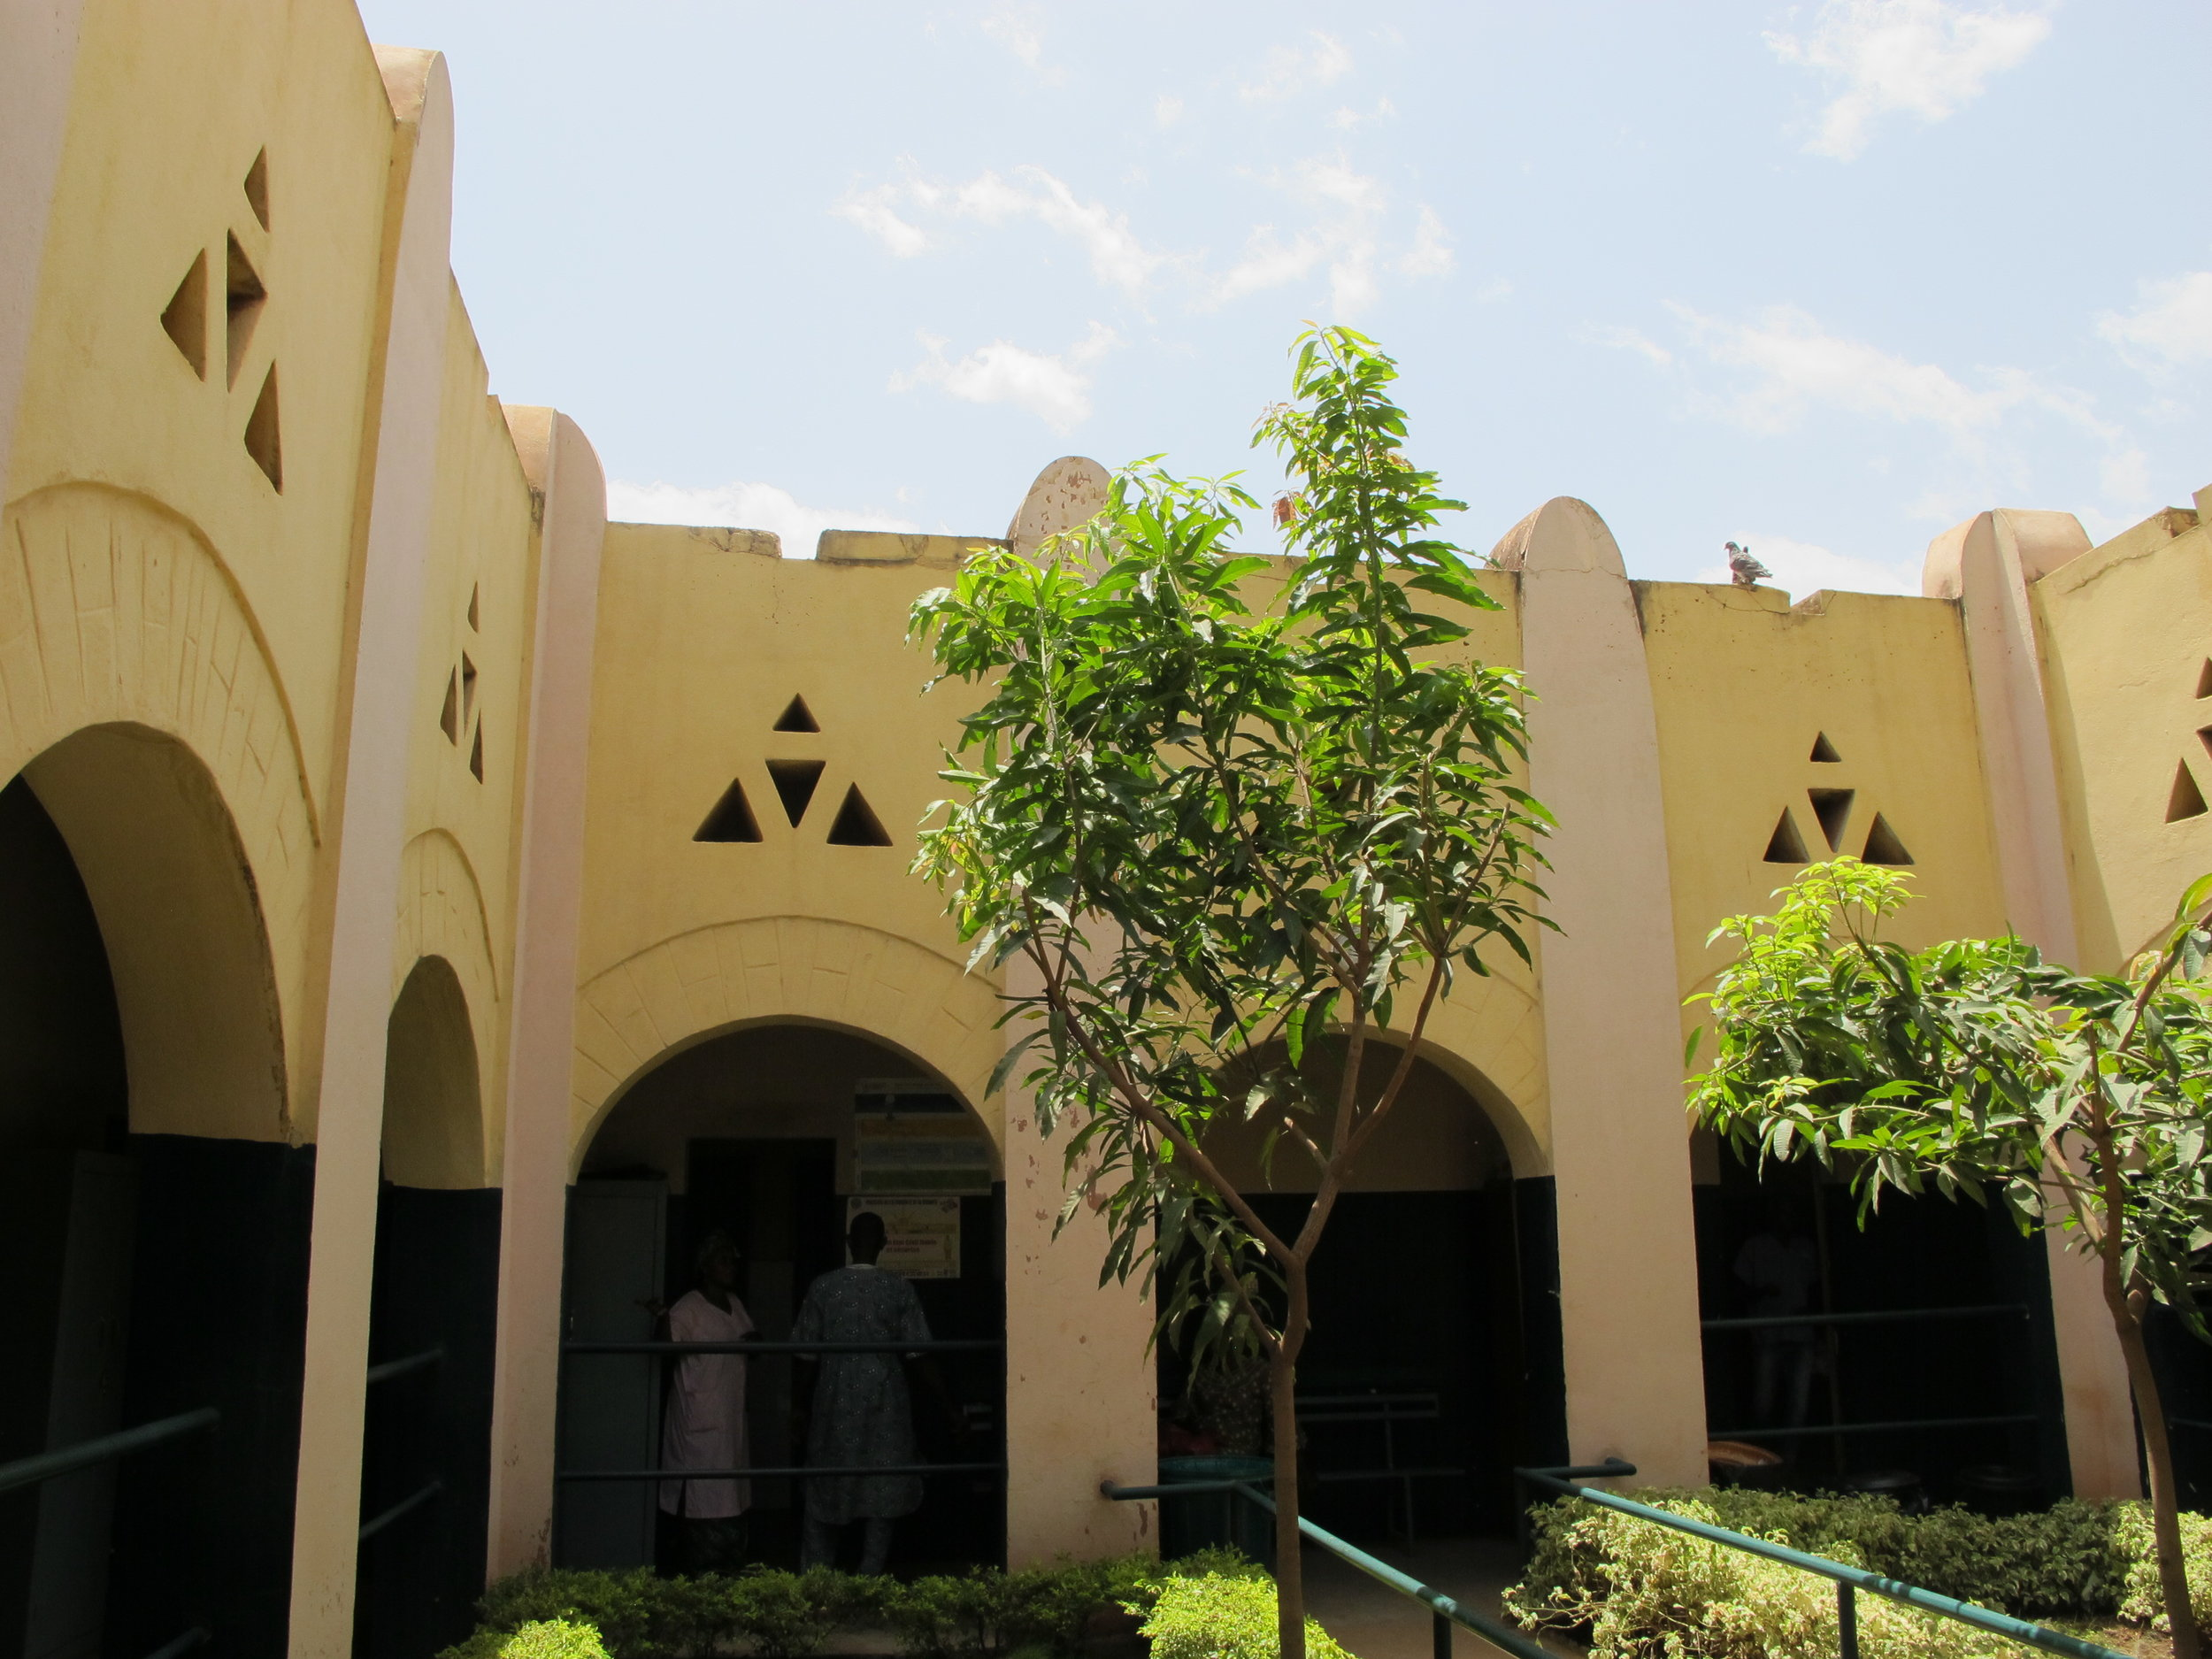 Courtyard at the Banconi clinic